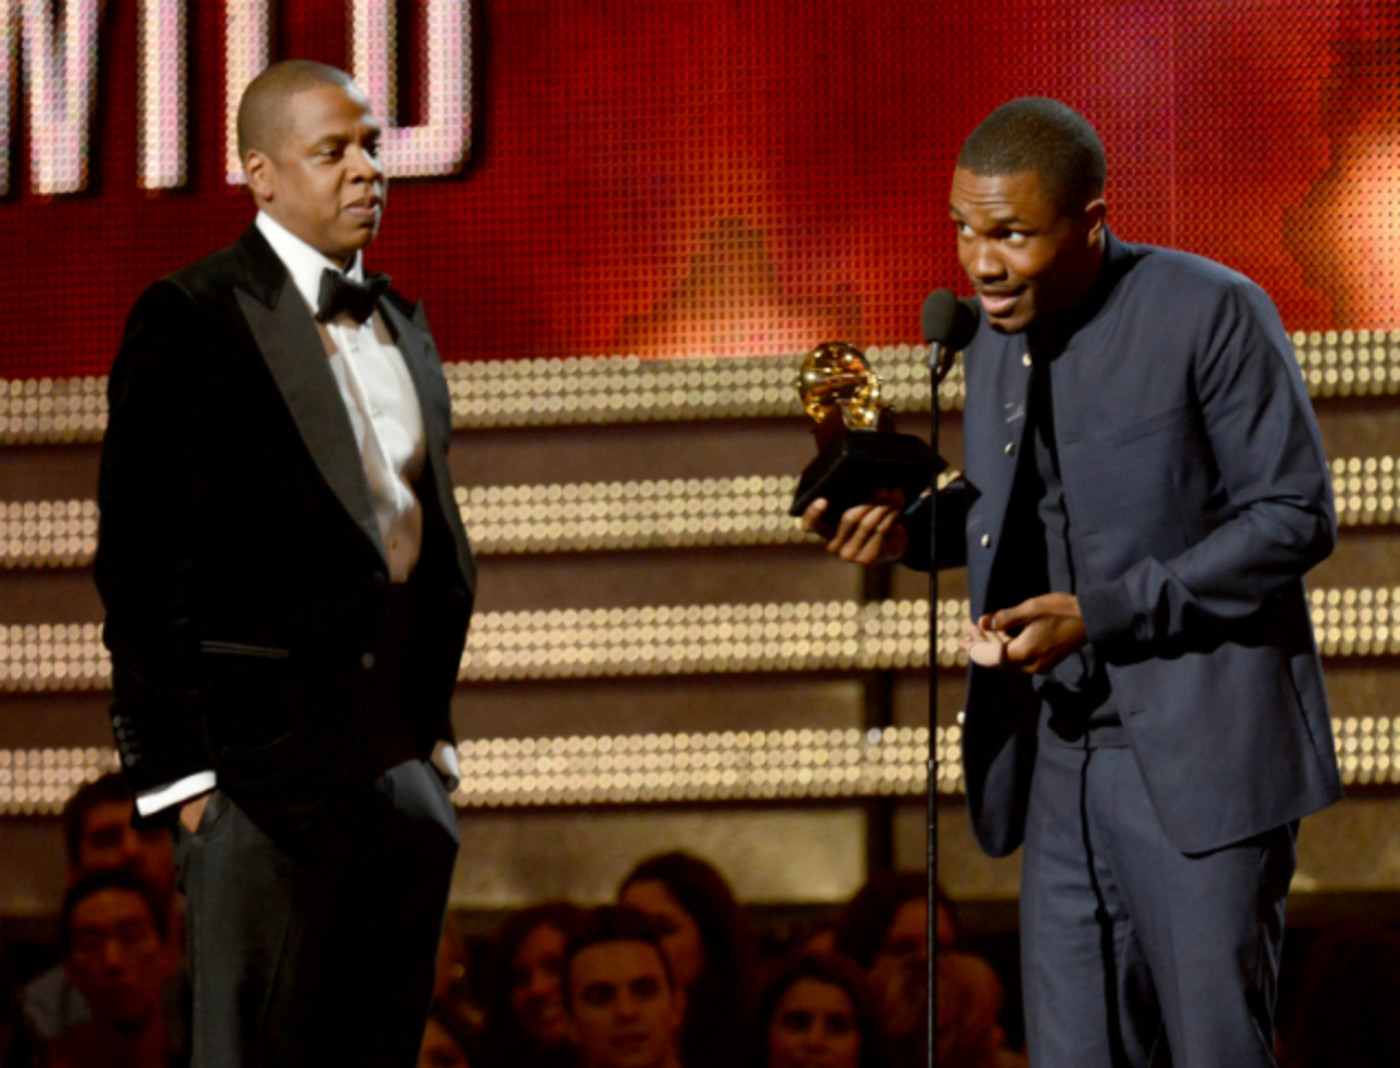 Jay Z and Frank Ocean at the 55th Grammy Awards